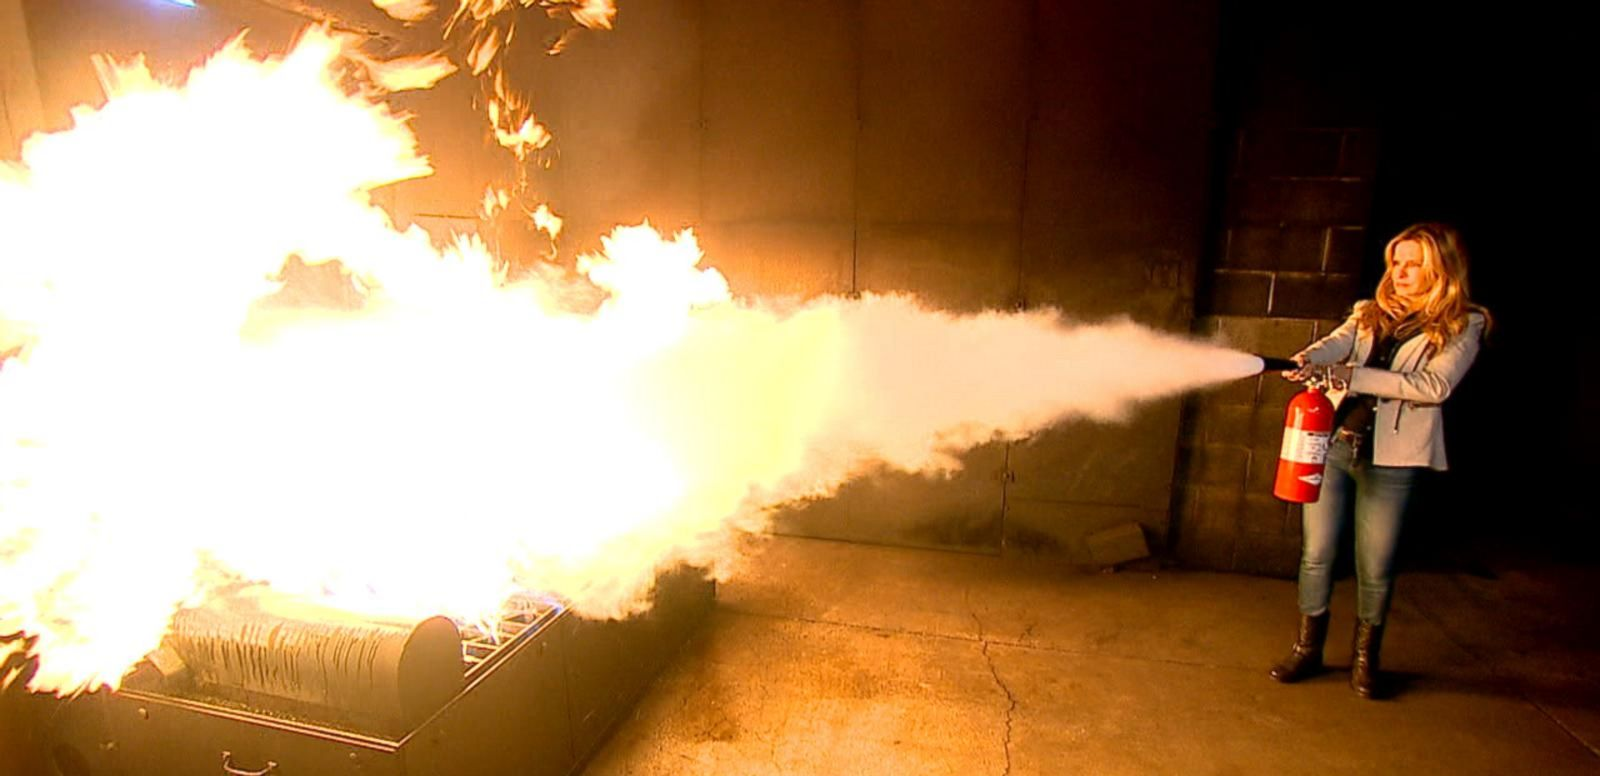 VIDEO: Knowing How to Use Your Fire Extinguisher Could Make All the Difference